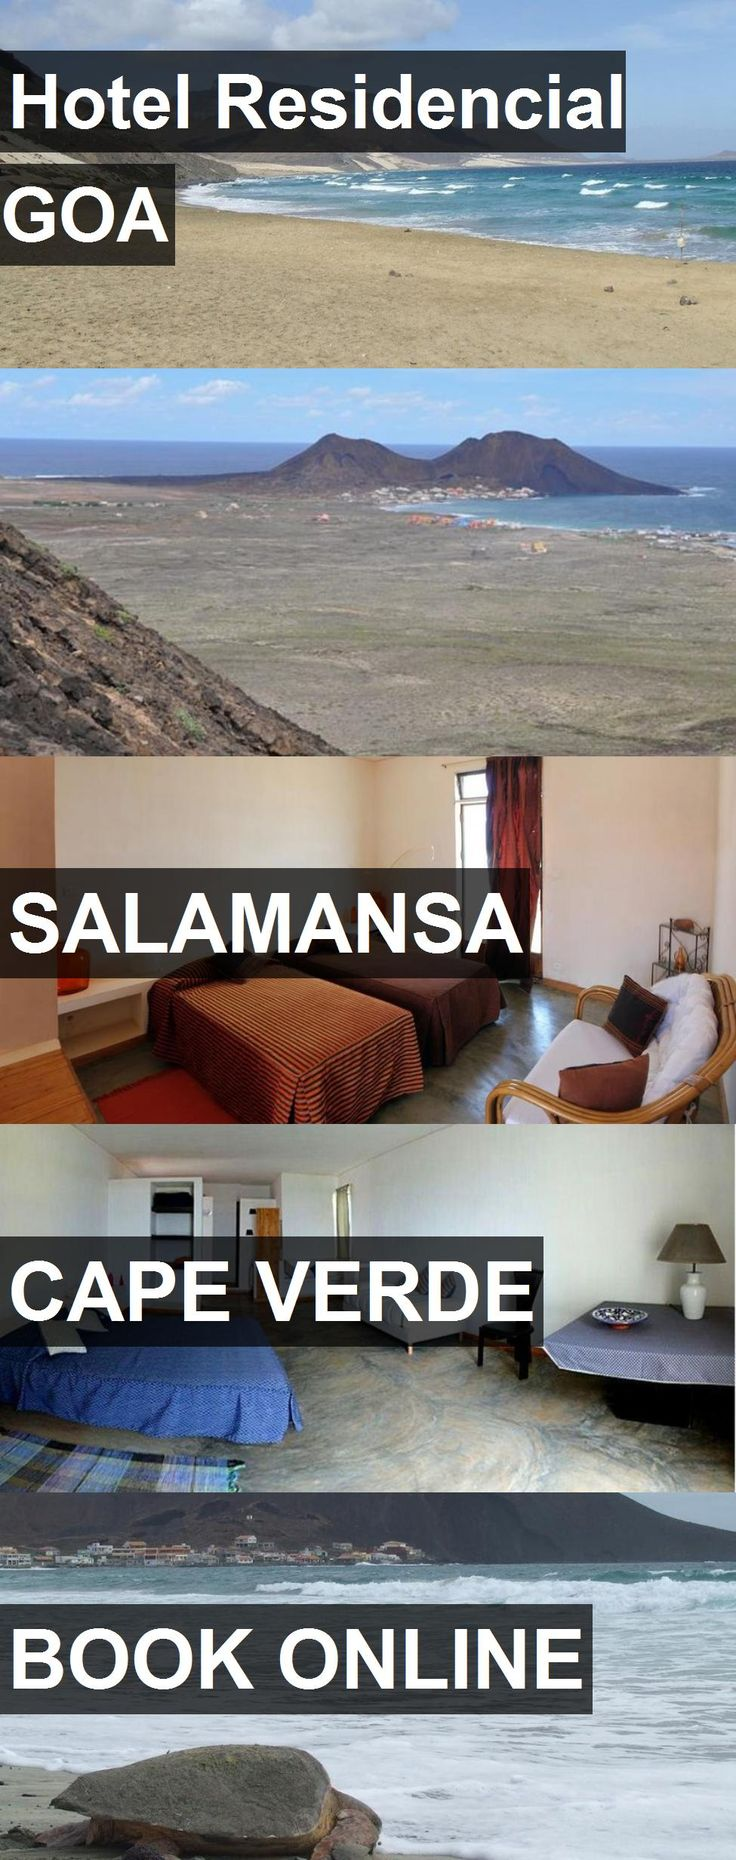 Hotel Residencial GOA in Salamansa, Cape Verde. For more information, photos, reviews and best prices please follow the link. #CapeVerde #Salamansa #travel #vacation #hotel